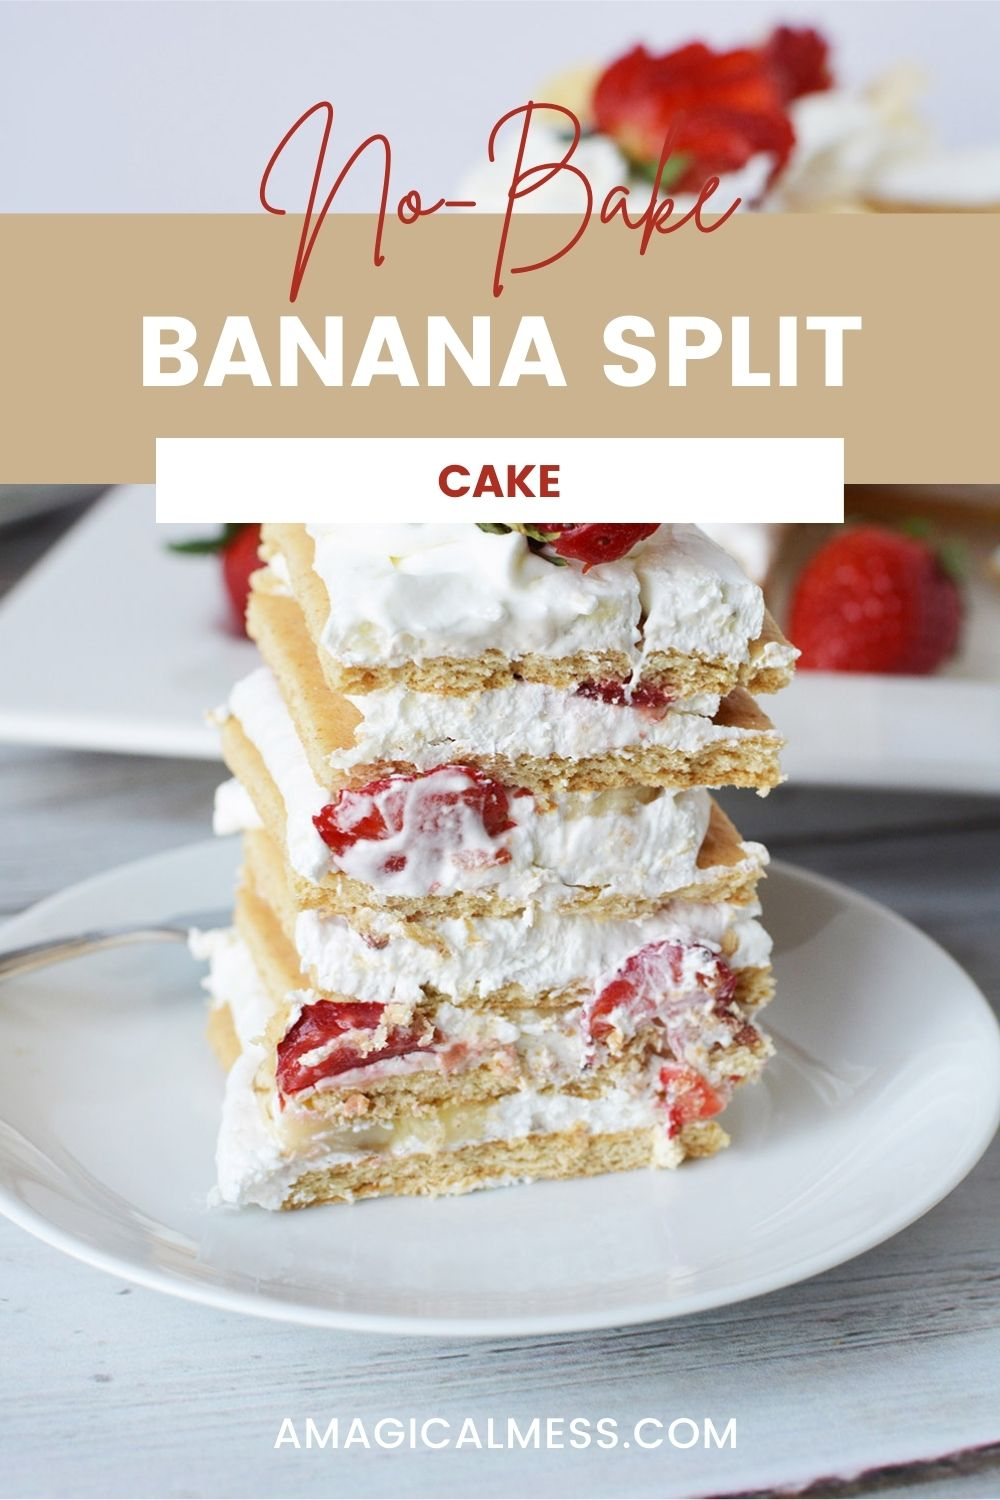 Stacked strawberry and banana ice box cake on a plate.